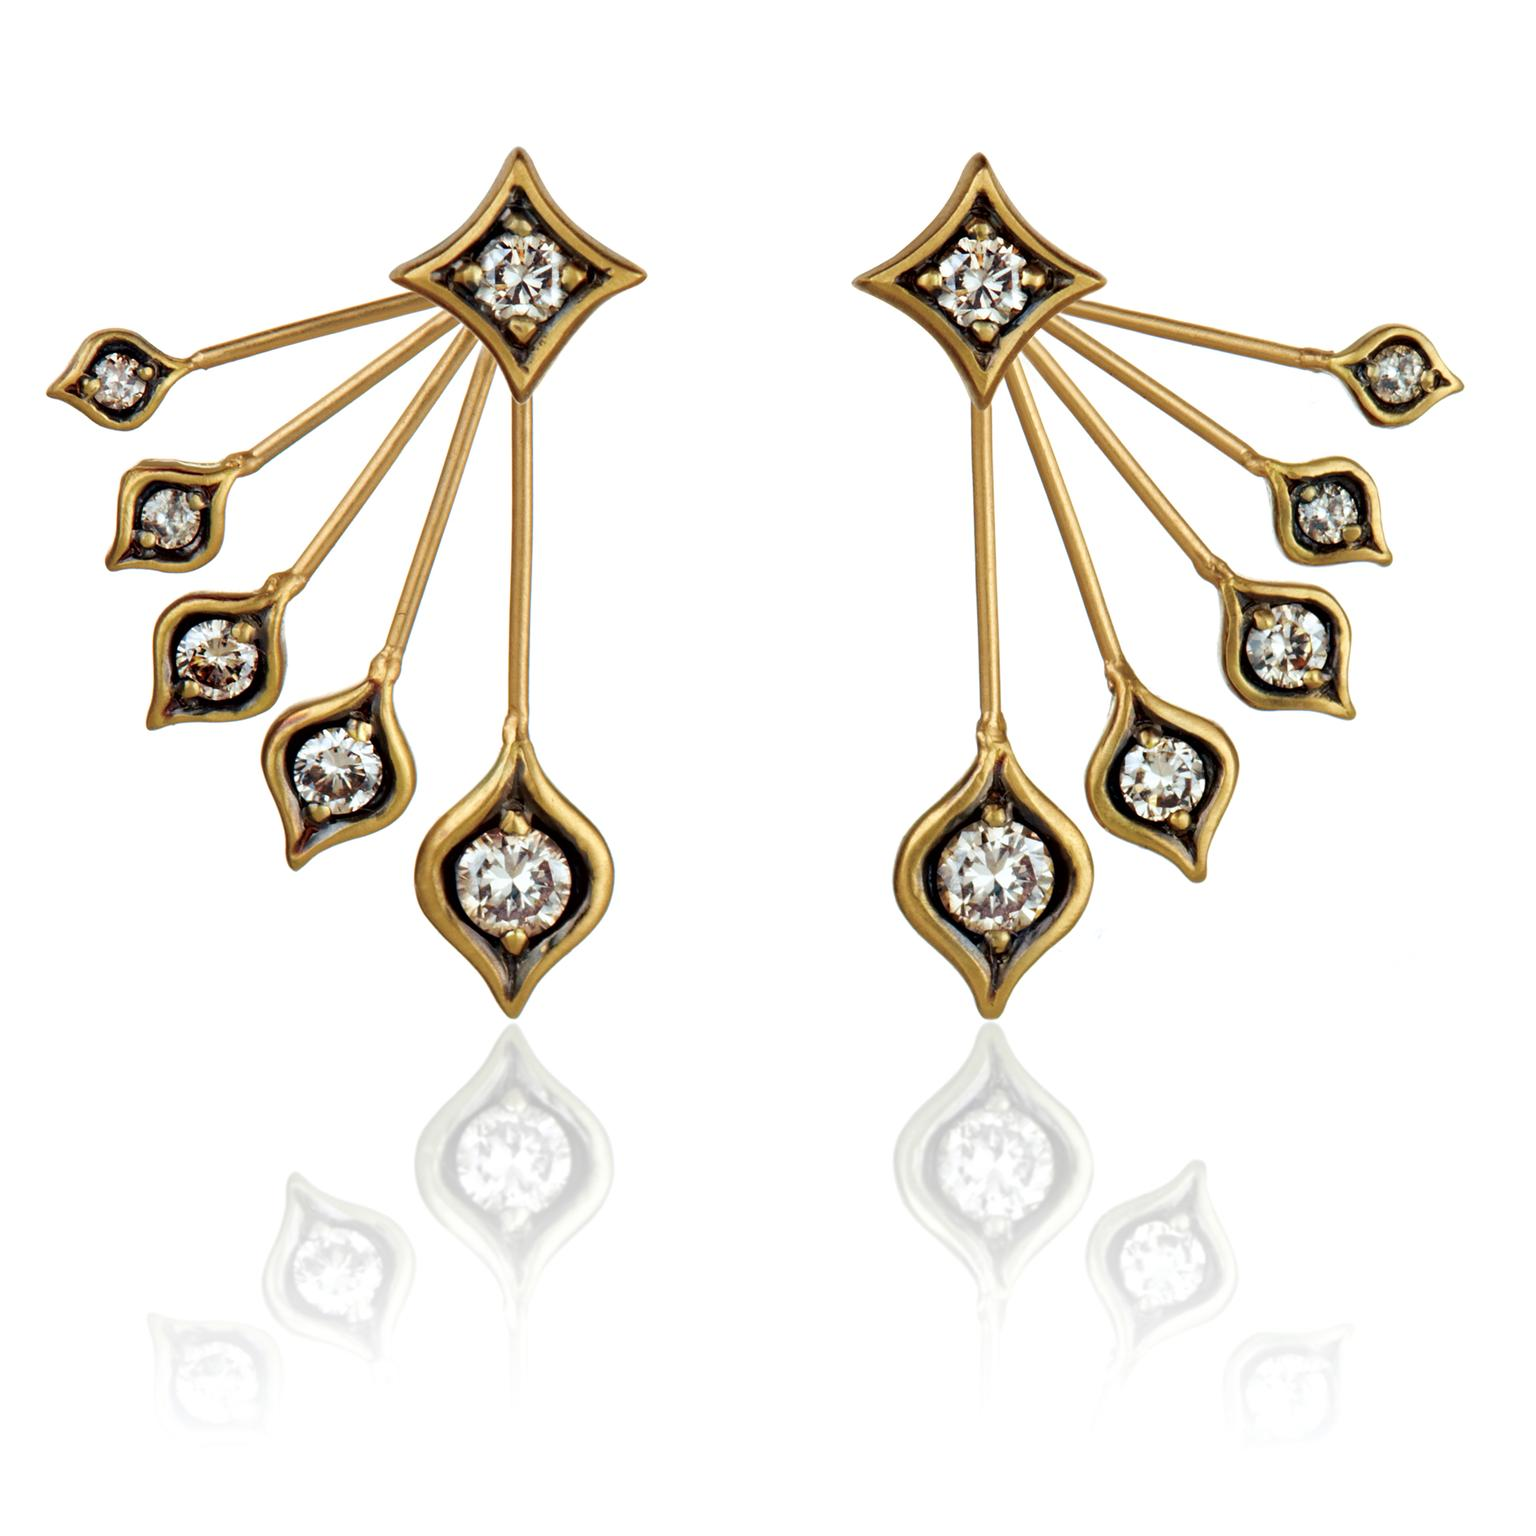 Anahita Peacock diamond earrings